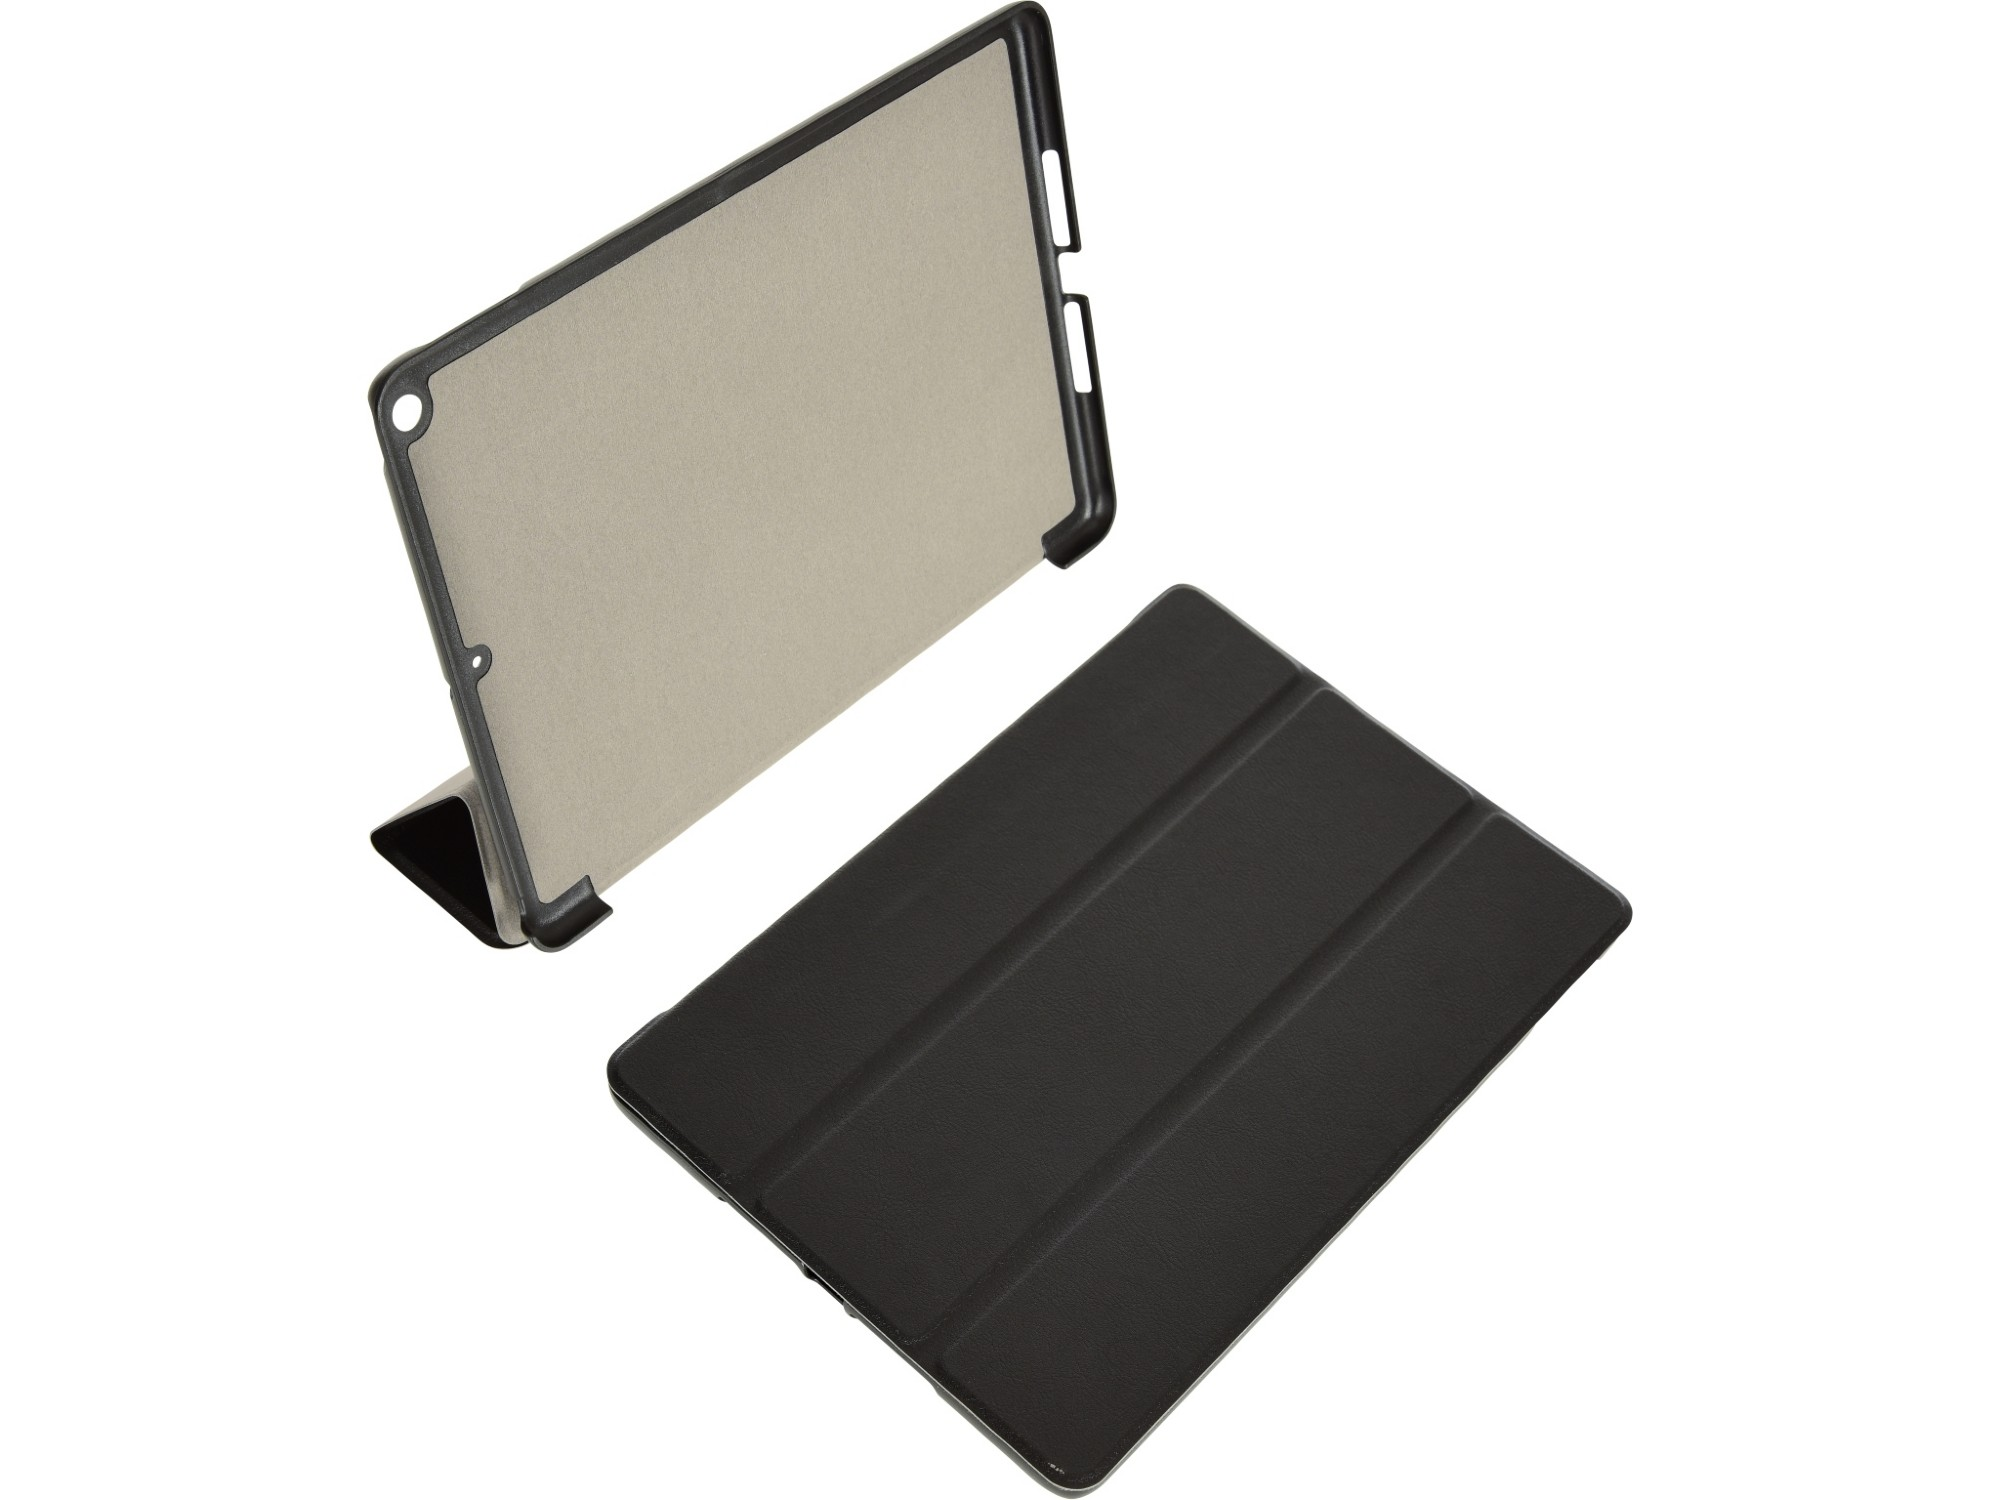 SANDBERG 405-86 WRAPON CASE IPAD2017 9.7